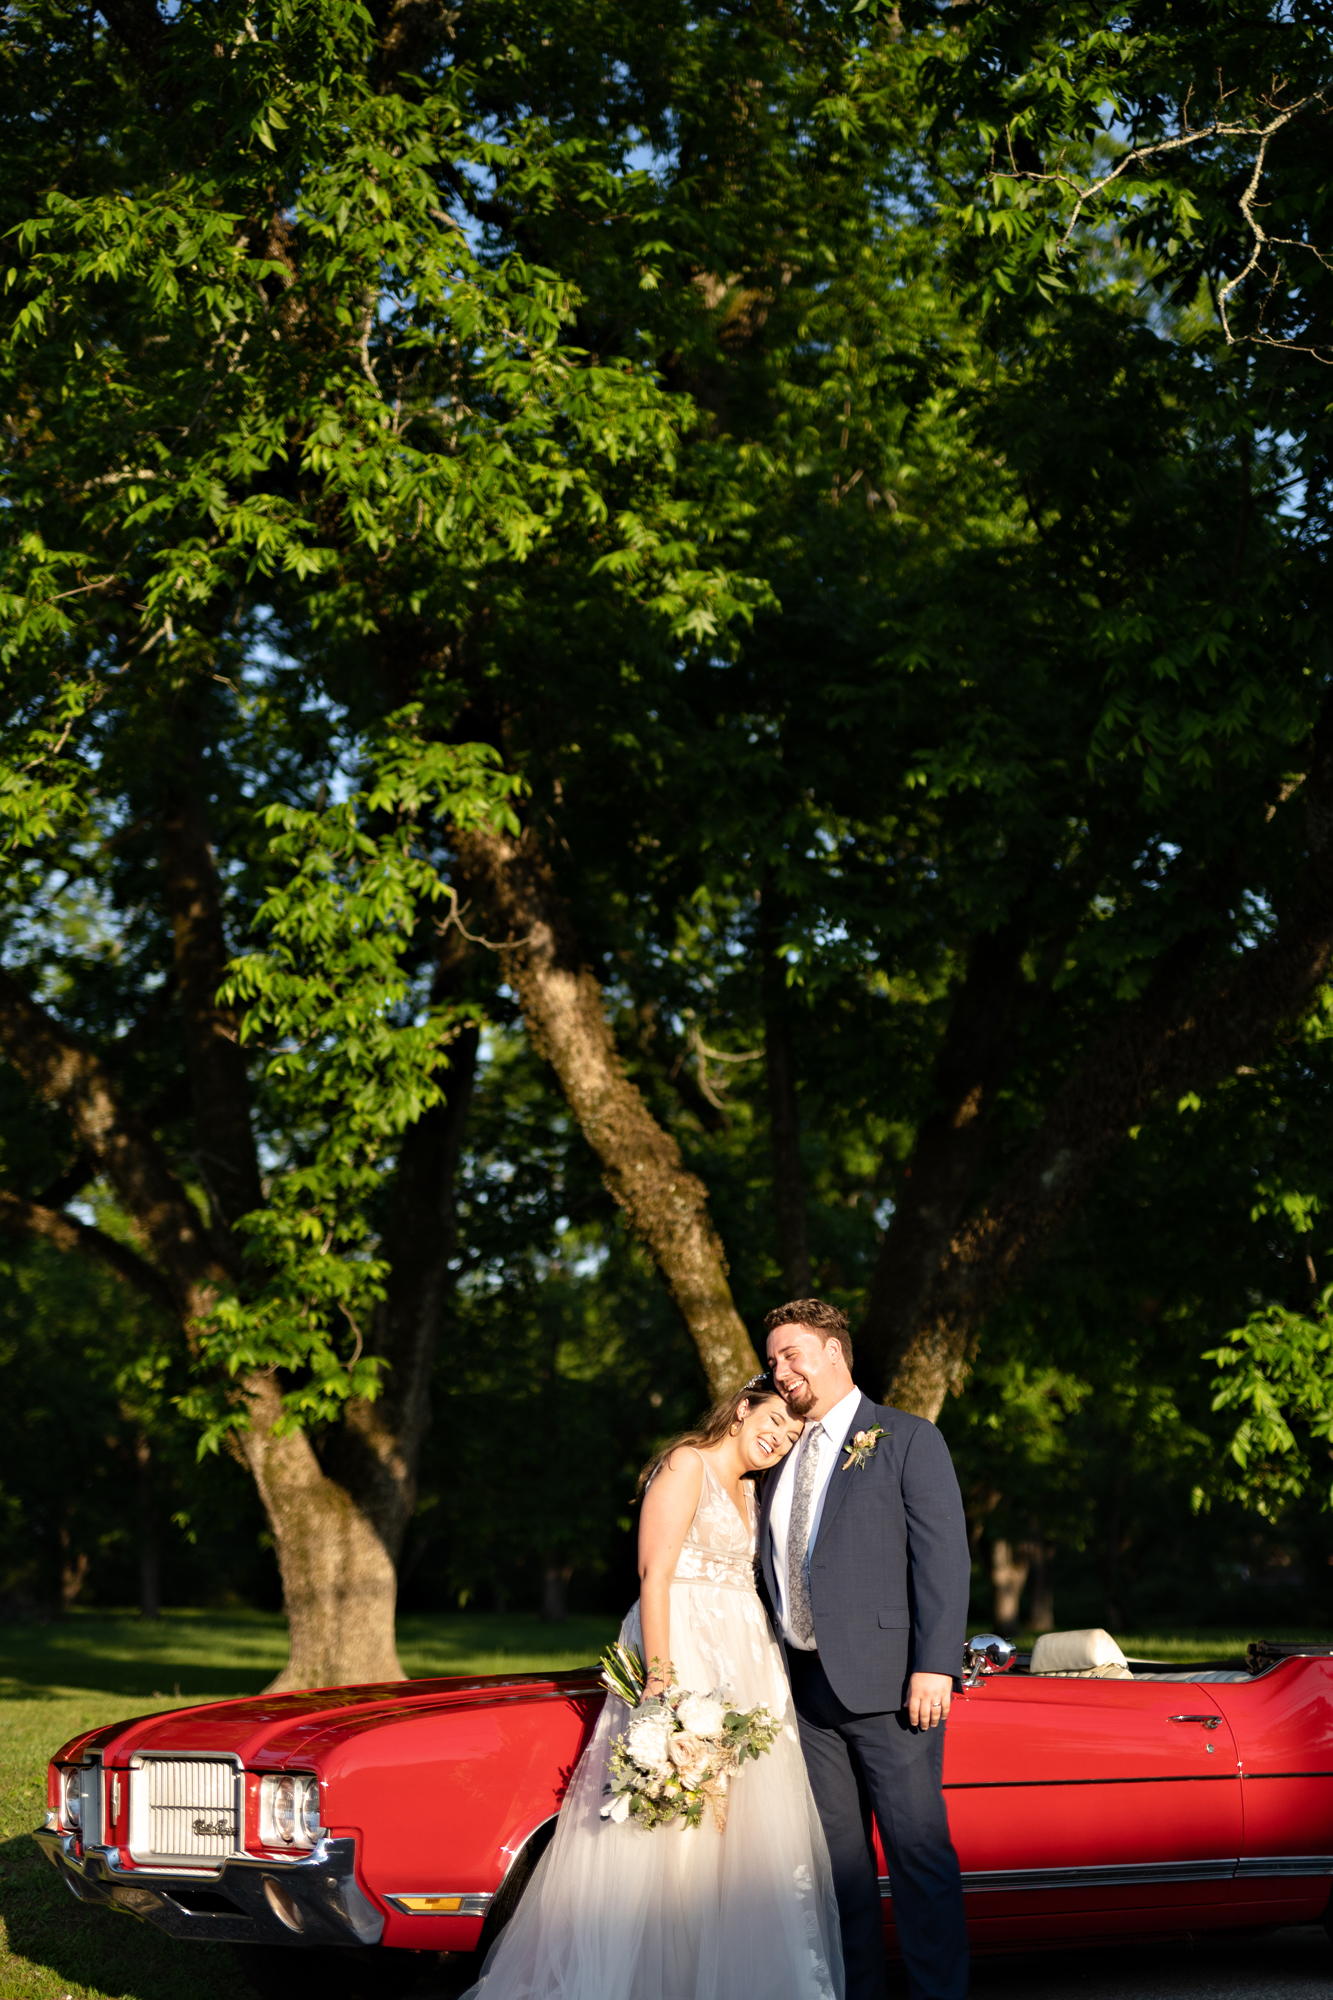 Eclectic-Alabama-Wedding-Photographers-Nick-Drollette-Photography-117.jpg